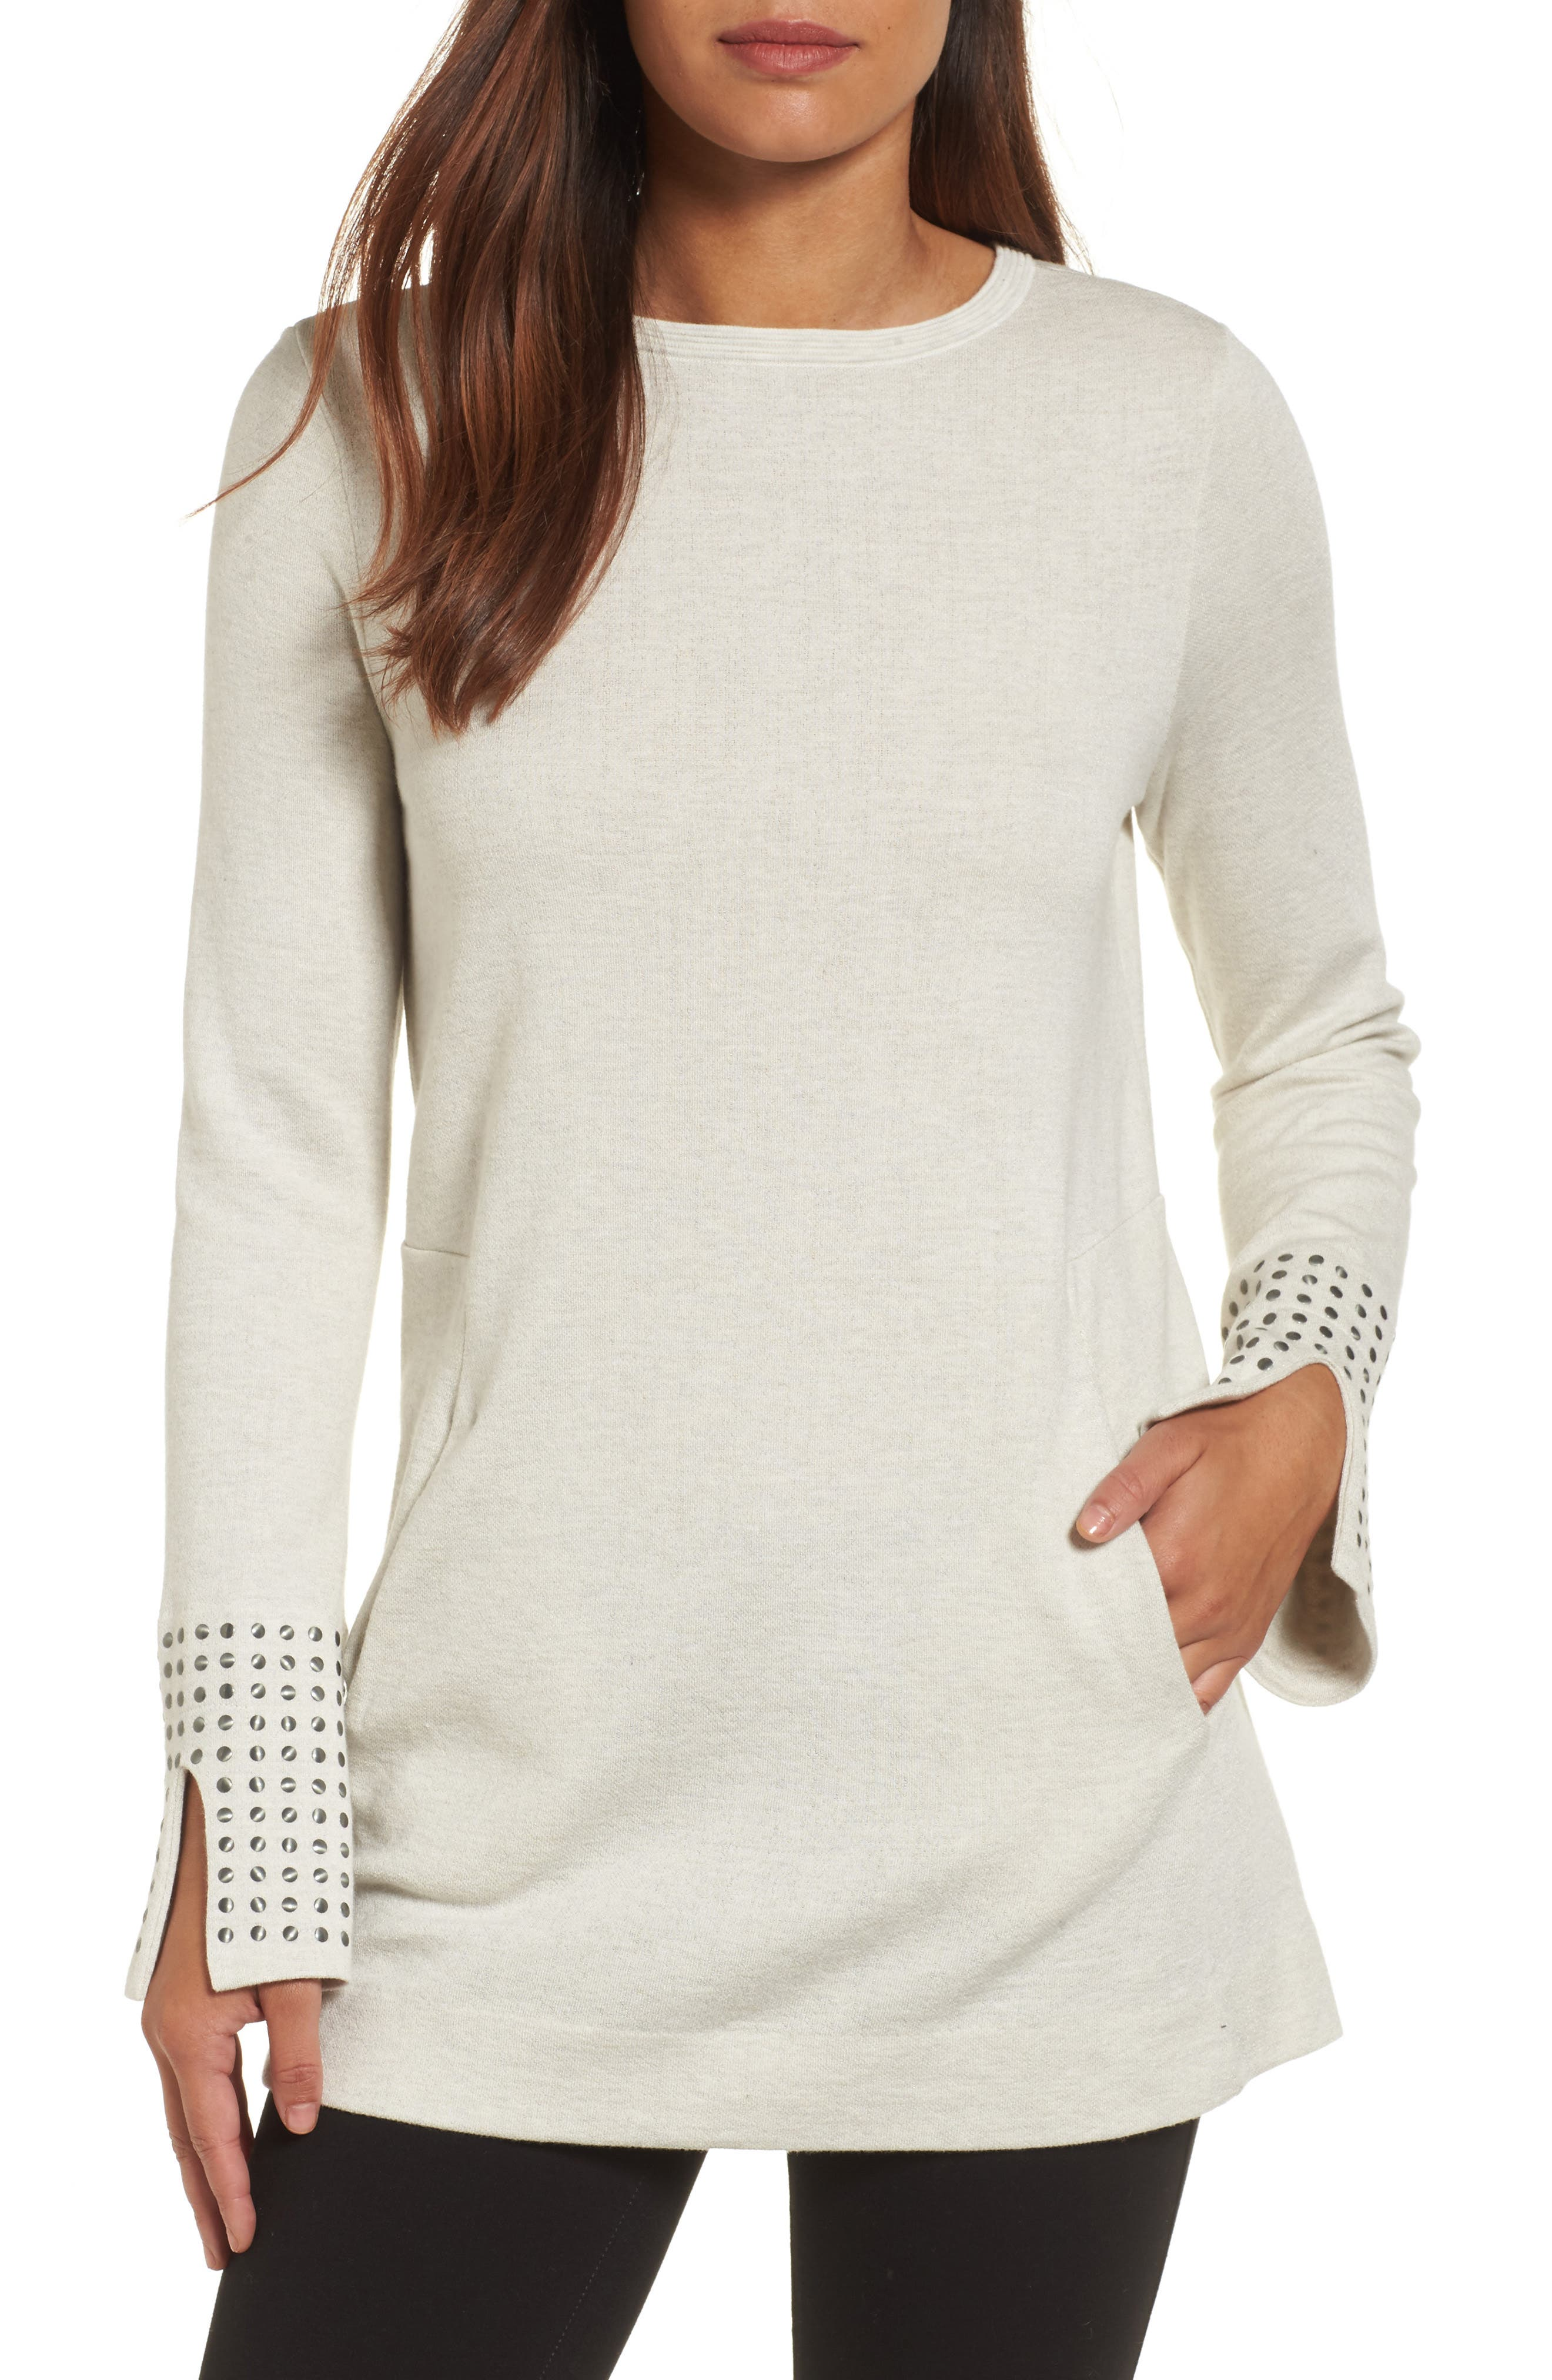 Alternate Image 1 Selected - NIC+ZOE Stud Cuff Top